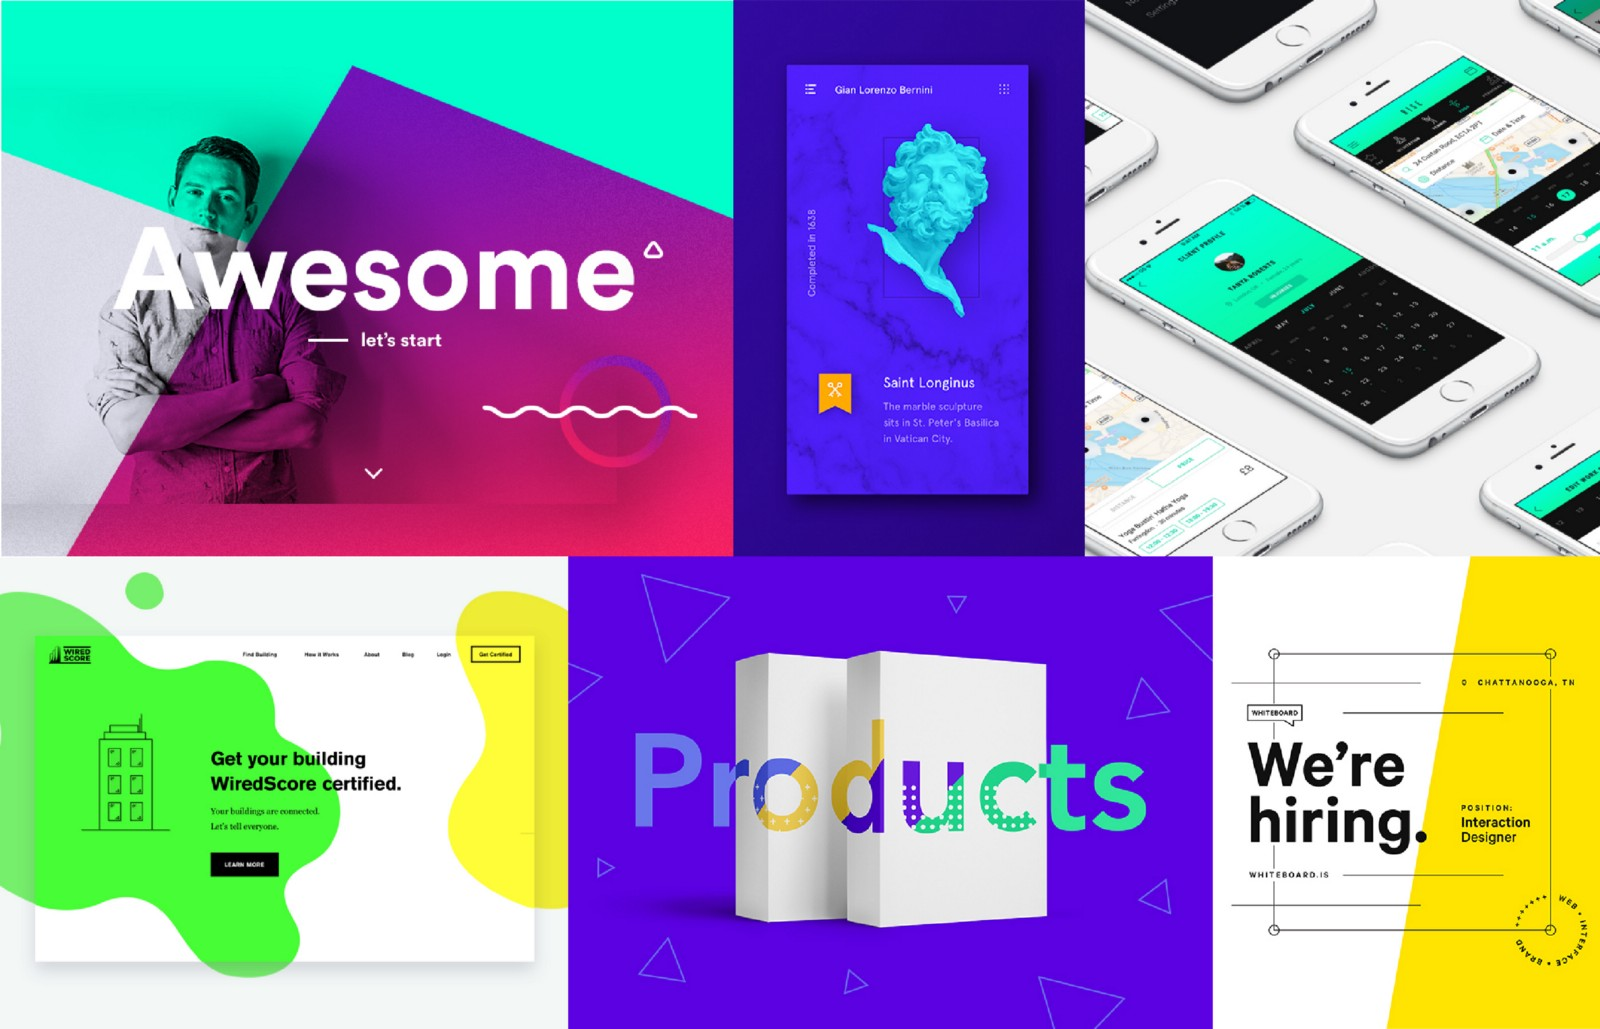 Graphic design trends for medium - As We All Know Colours Can Convey Emotions And They Can Be Used Strategically In Brand And Ui Design Bright Colours Tend To Grab Our Attention And Generate